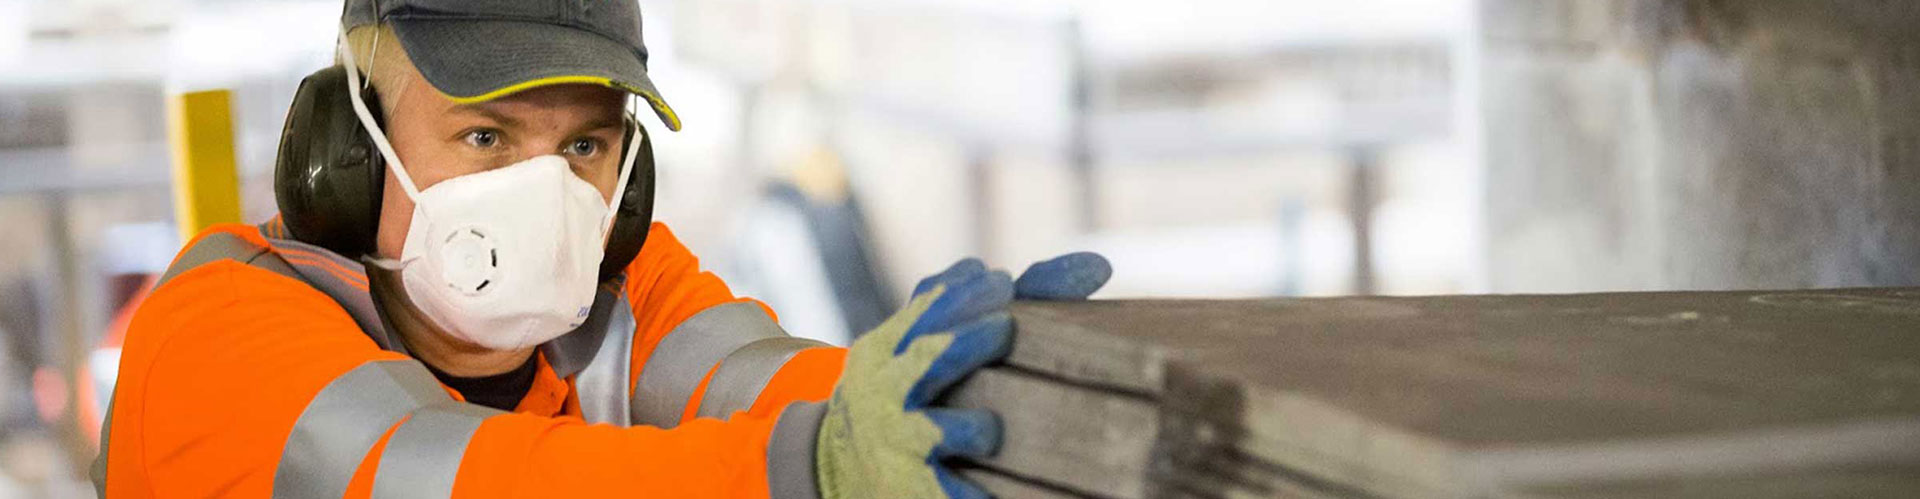 TIPS-Work-Injury-Prevention-Rogers-MN_Header-5